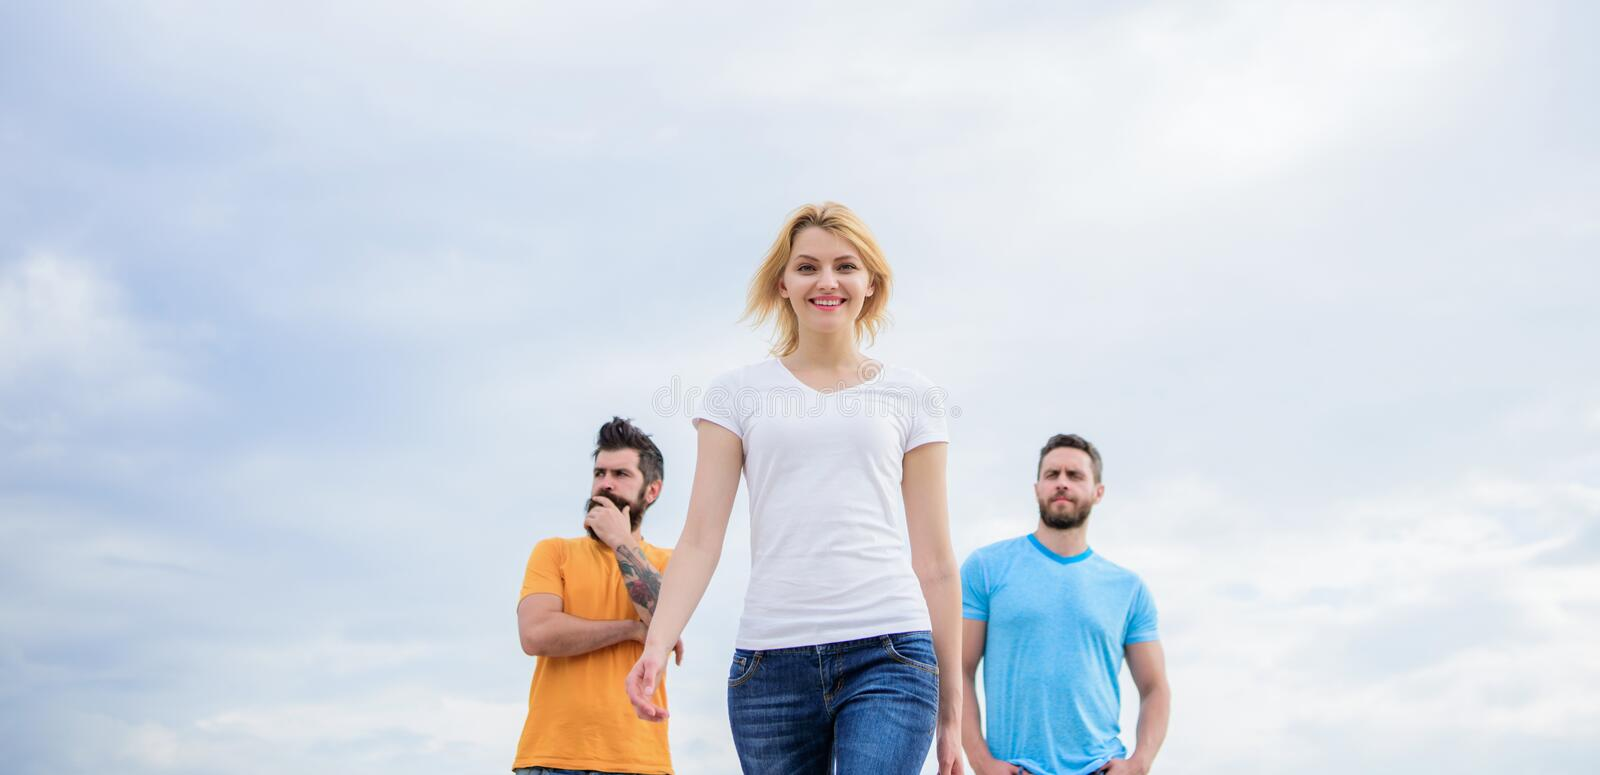 Leadership concept. Woman in front of men feel confident. Moving forward support male team. What makes successful female royalty free stock photography